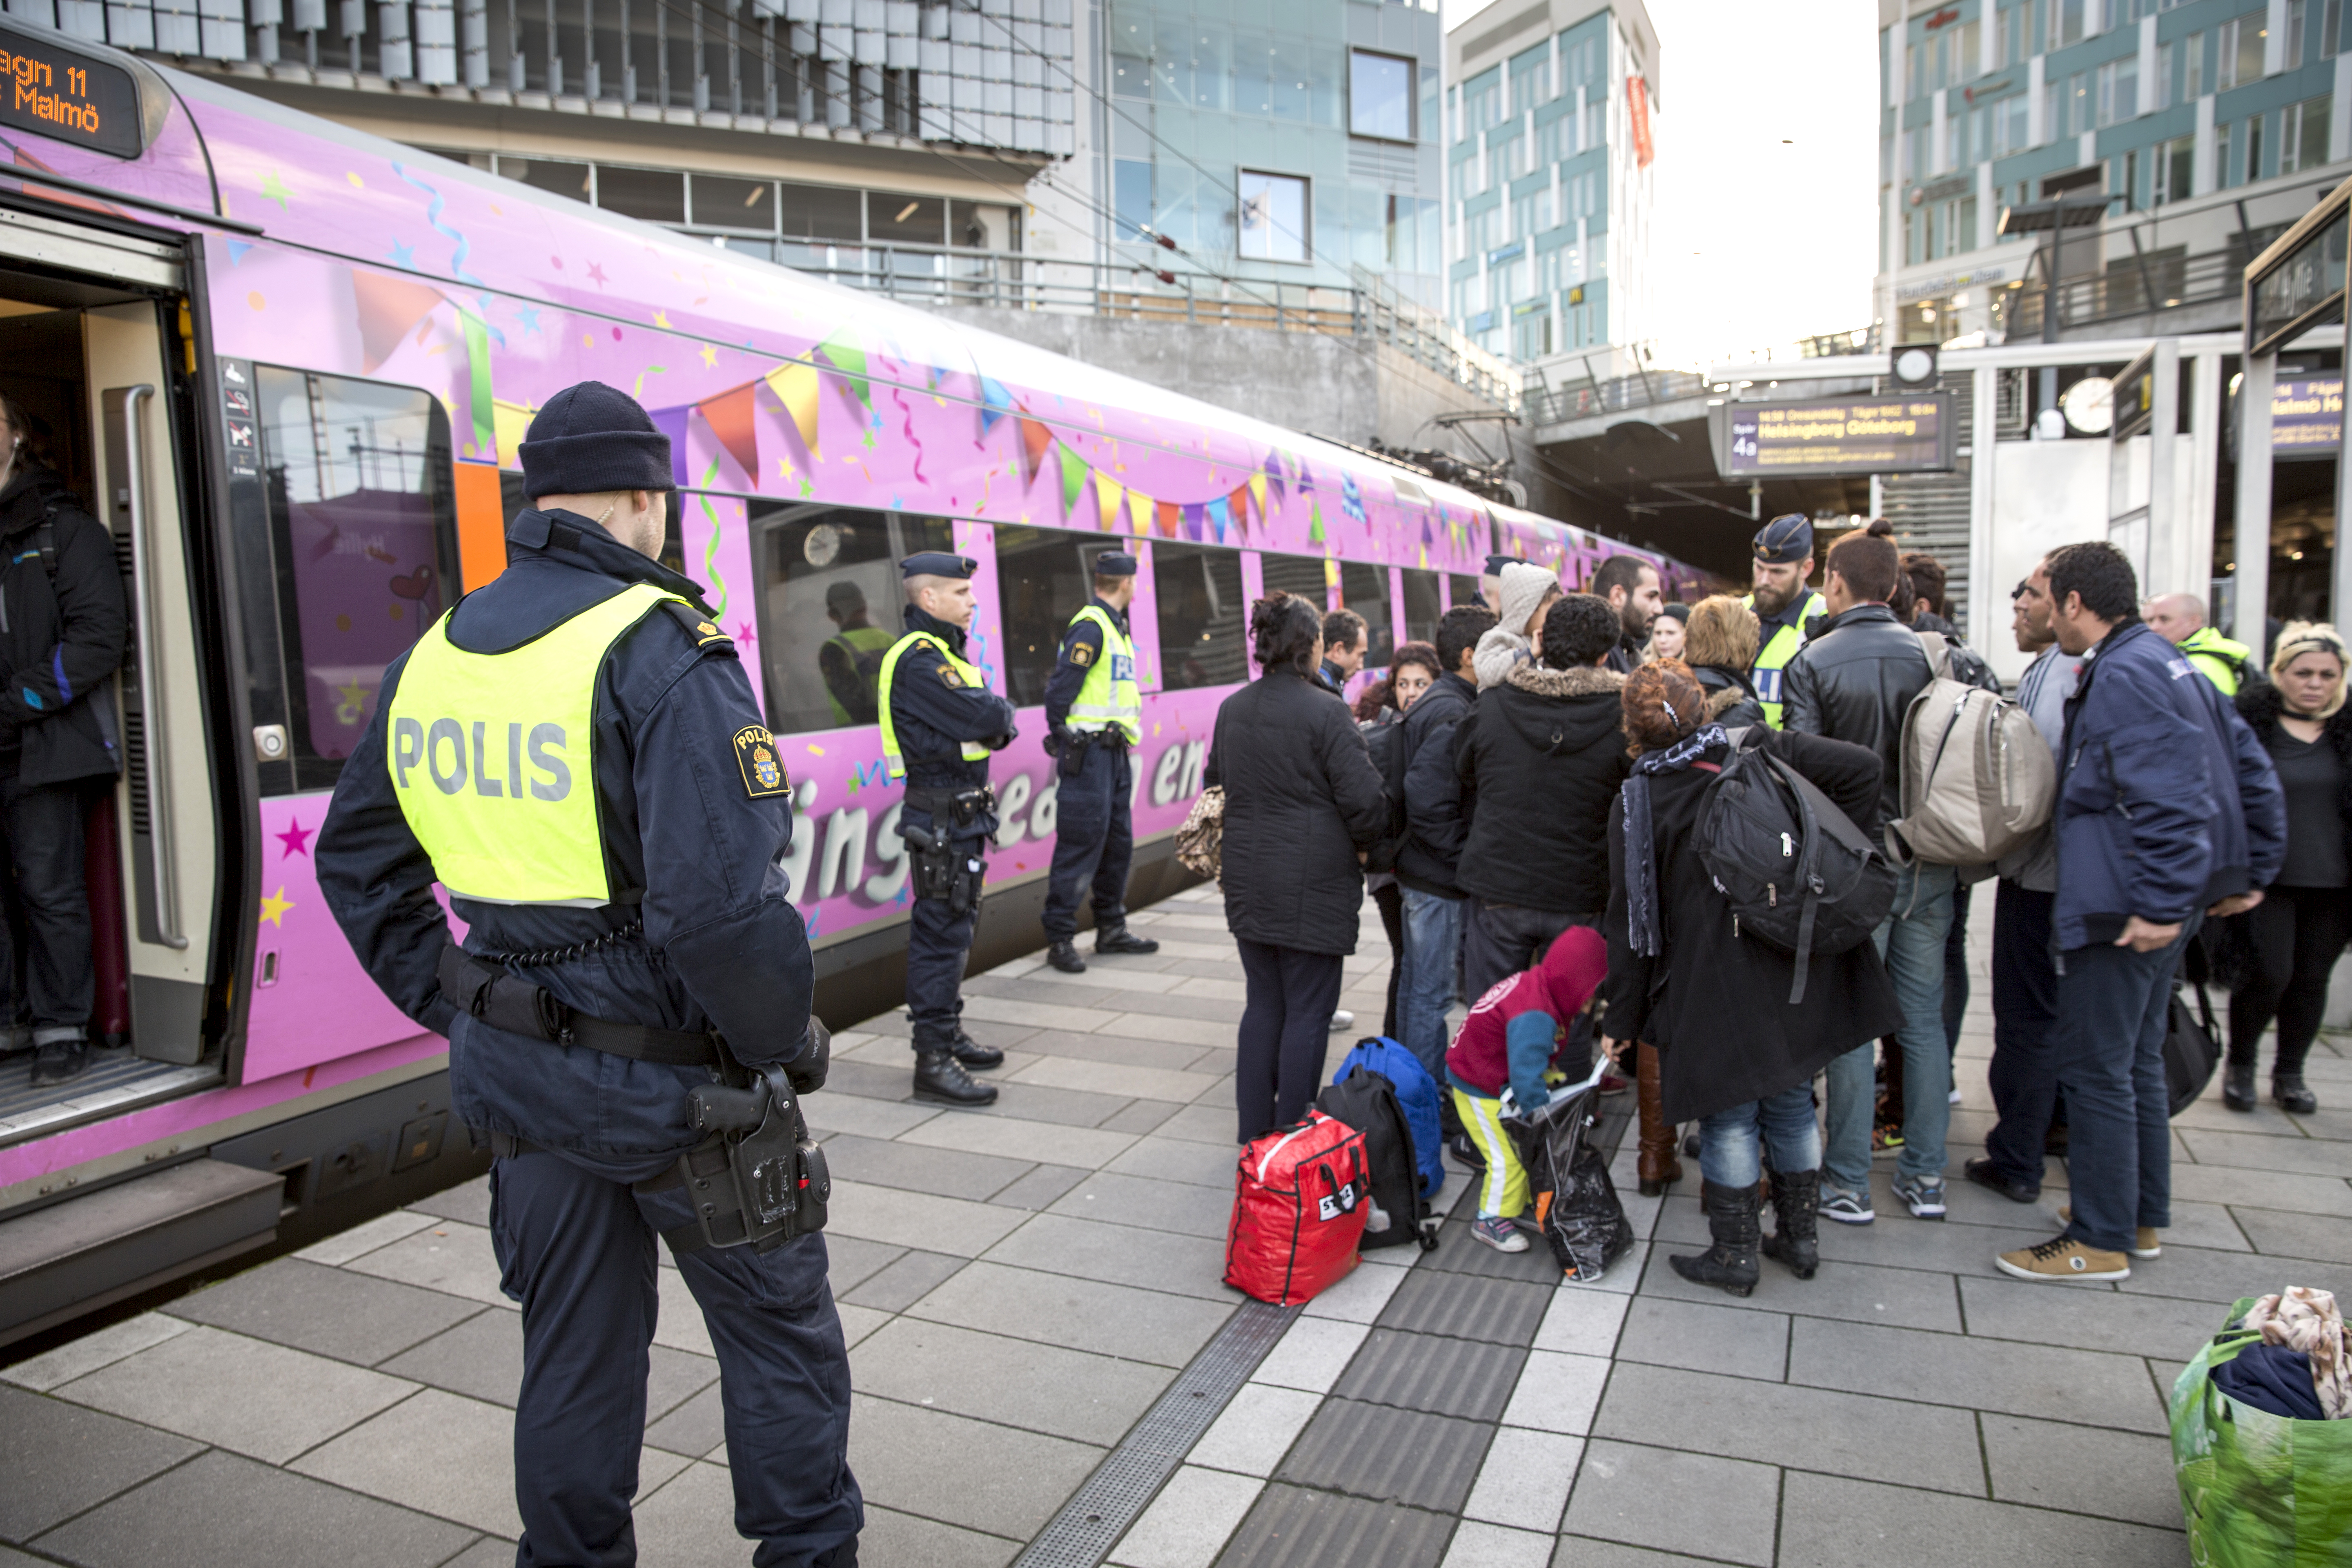 Police at a temporary ID check station on the Swedish side of the border. Starting Jan 4 2016, checks are to take place on the Danish side before trains enter Sweden. Photo: News Øresund - Johan Wessman © News Øresund(CC BY 3.0) Detta verk av News Øresund är licensierat under en Creative Commons Erkännande 3.0 Unported-licens (CC BY 3.0). Bilden får fritt publiceras under förutsättning att källa anges. The picture can be used freely under the prerequisite that the source is given. News Øresund, Malmö, Sweden. www.newsoresund.org. News Øresund är en oberoende regional nyhetsbyrå som är en del av det oberoende dansk-svenska kunskapscentrat Øresundsinstituttet. www.newsoresund.org www.oresundsinstituttet.org